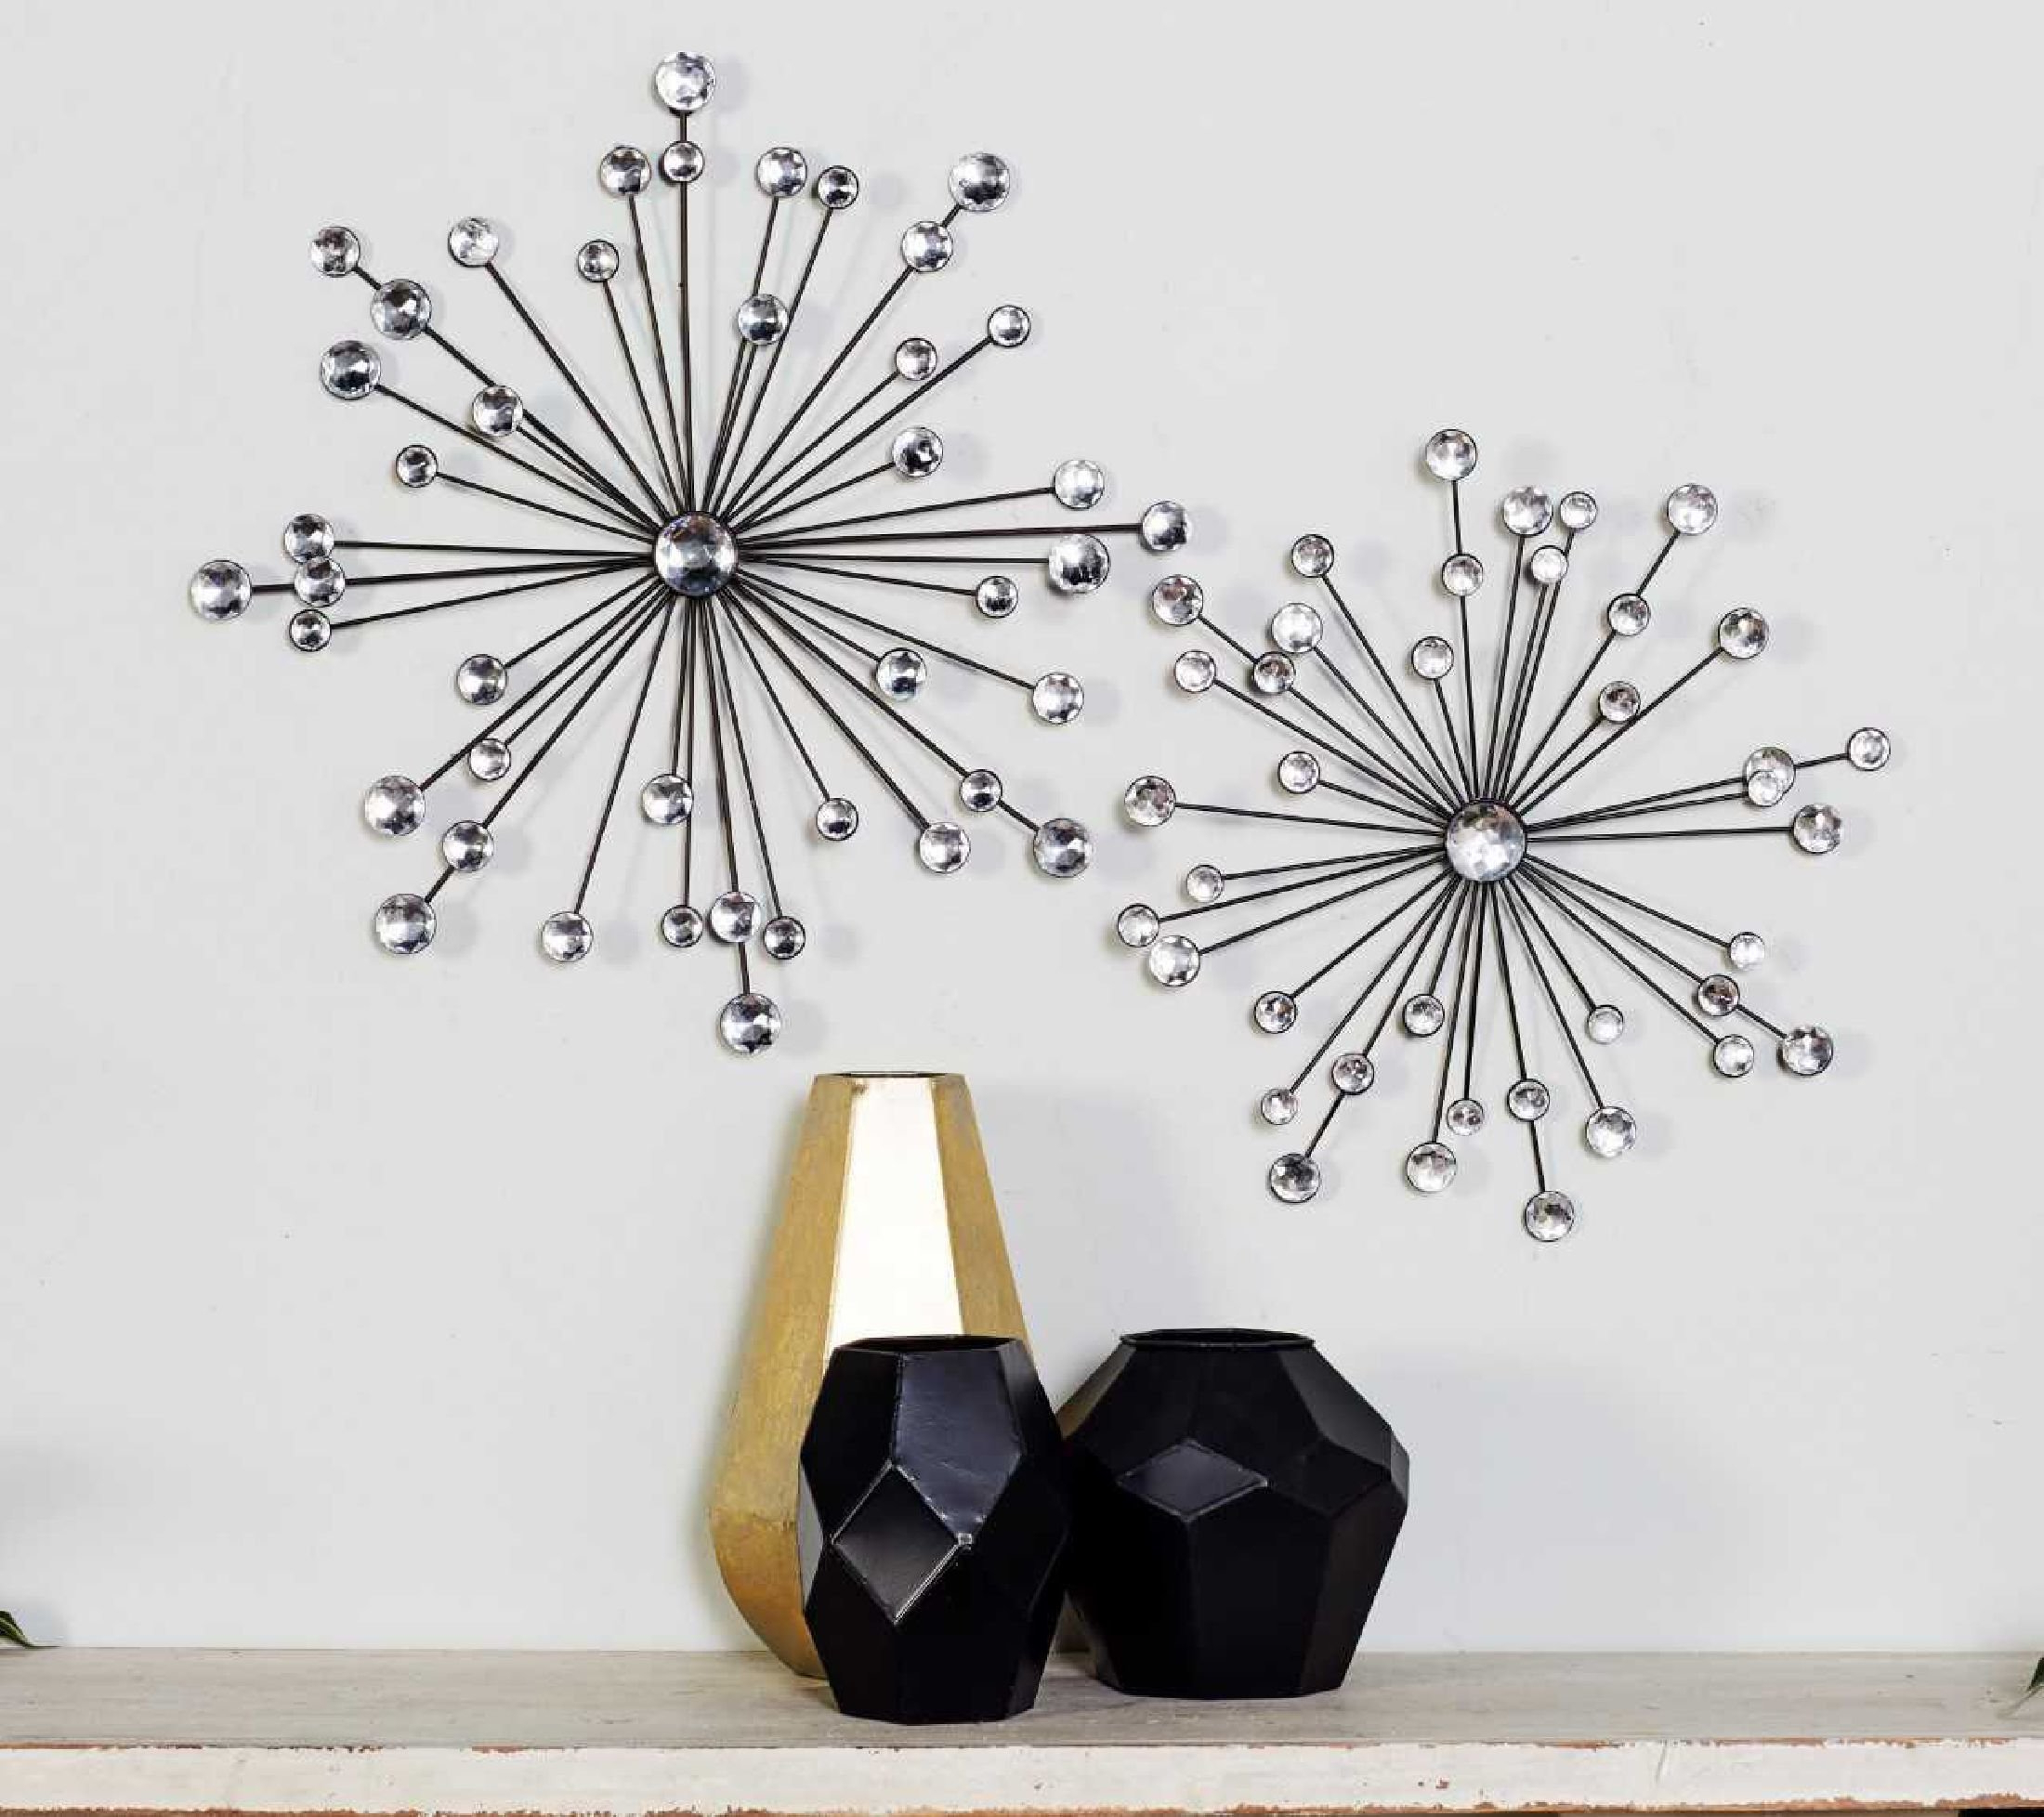 2 Piece Starburst Wall Decor Sets With Regard To Favorite Cole & Grey 3 Piece Metal And Acrylic Wall Décor Set & Reviews (View 6 of 20)